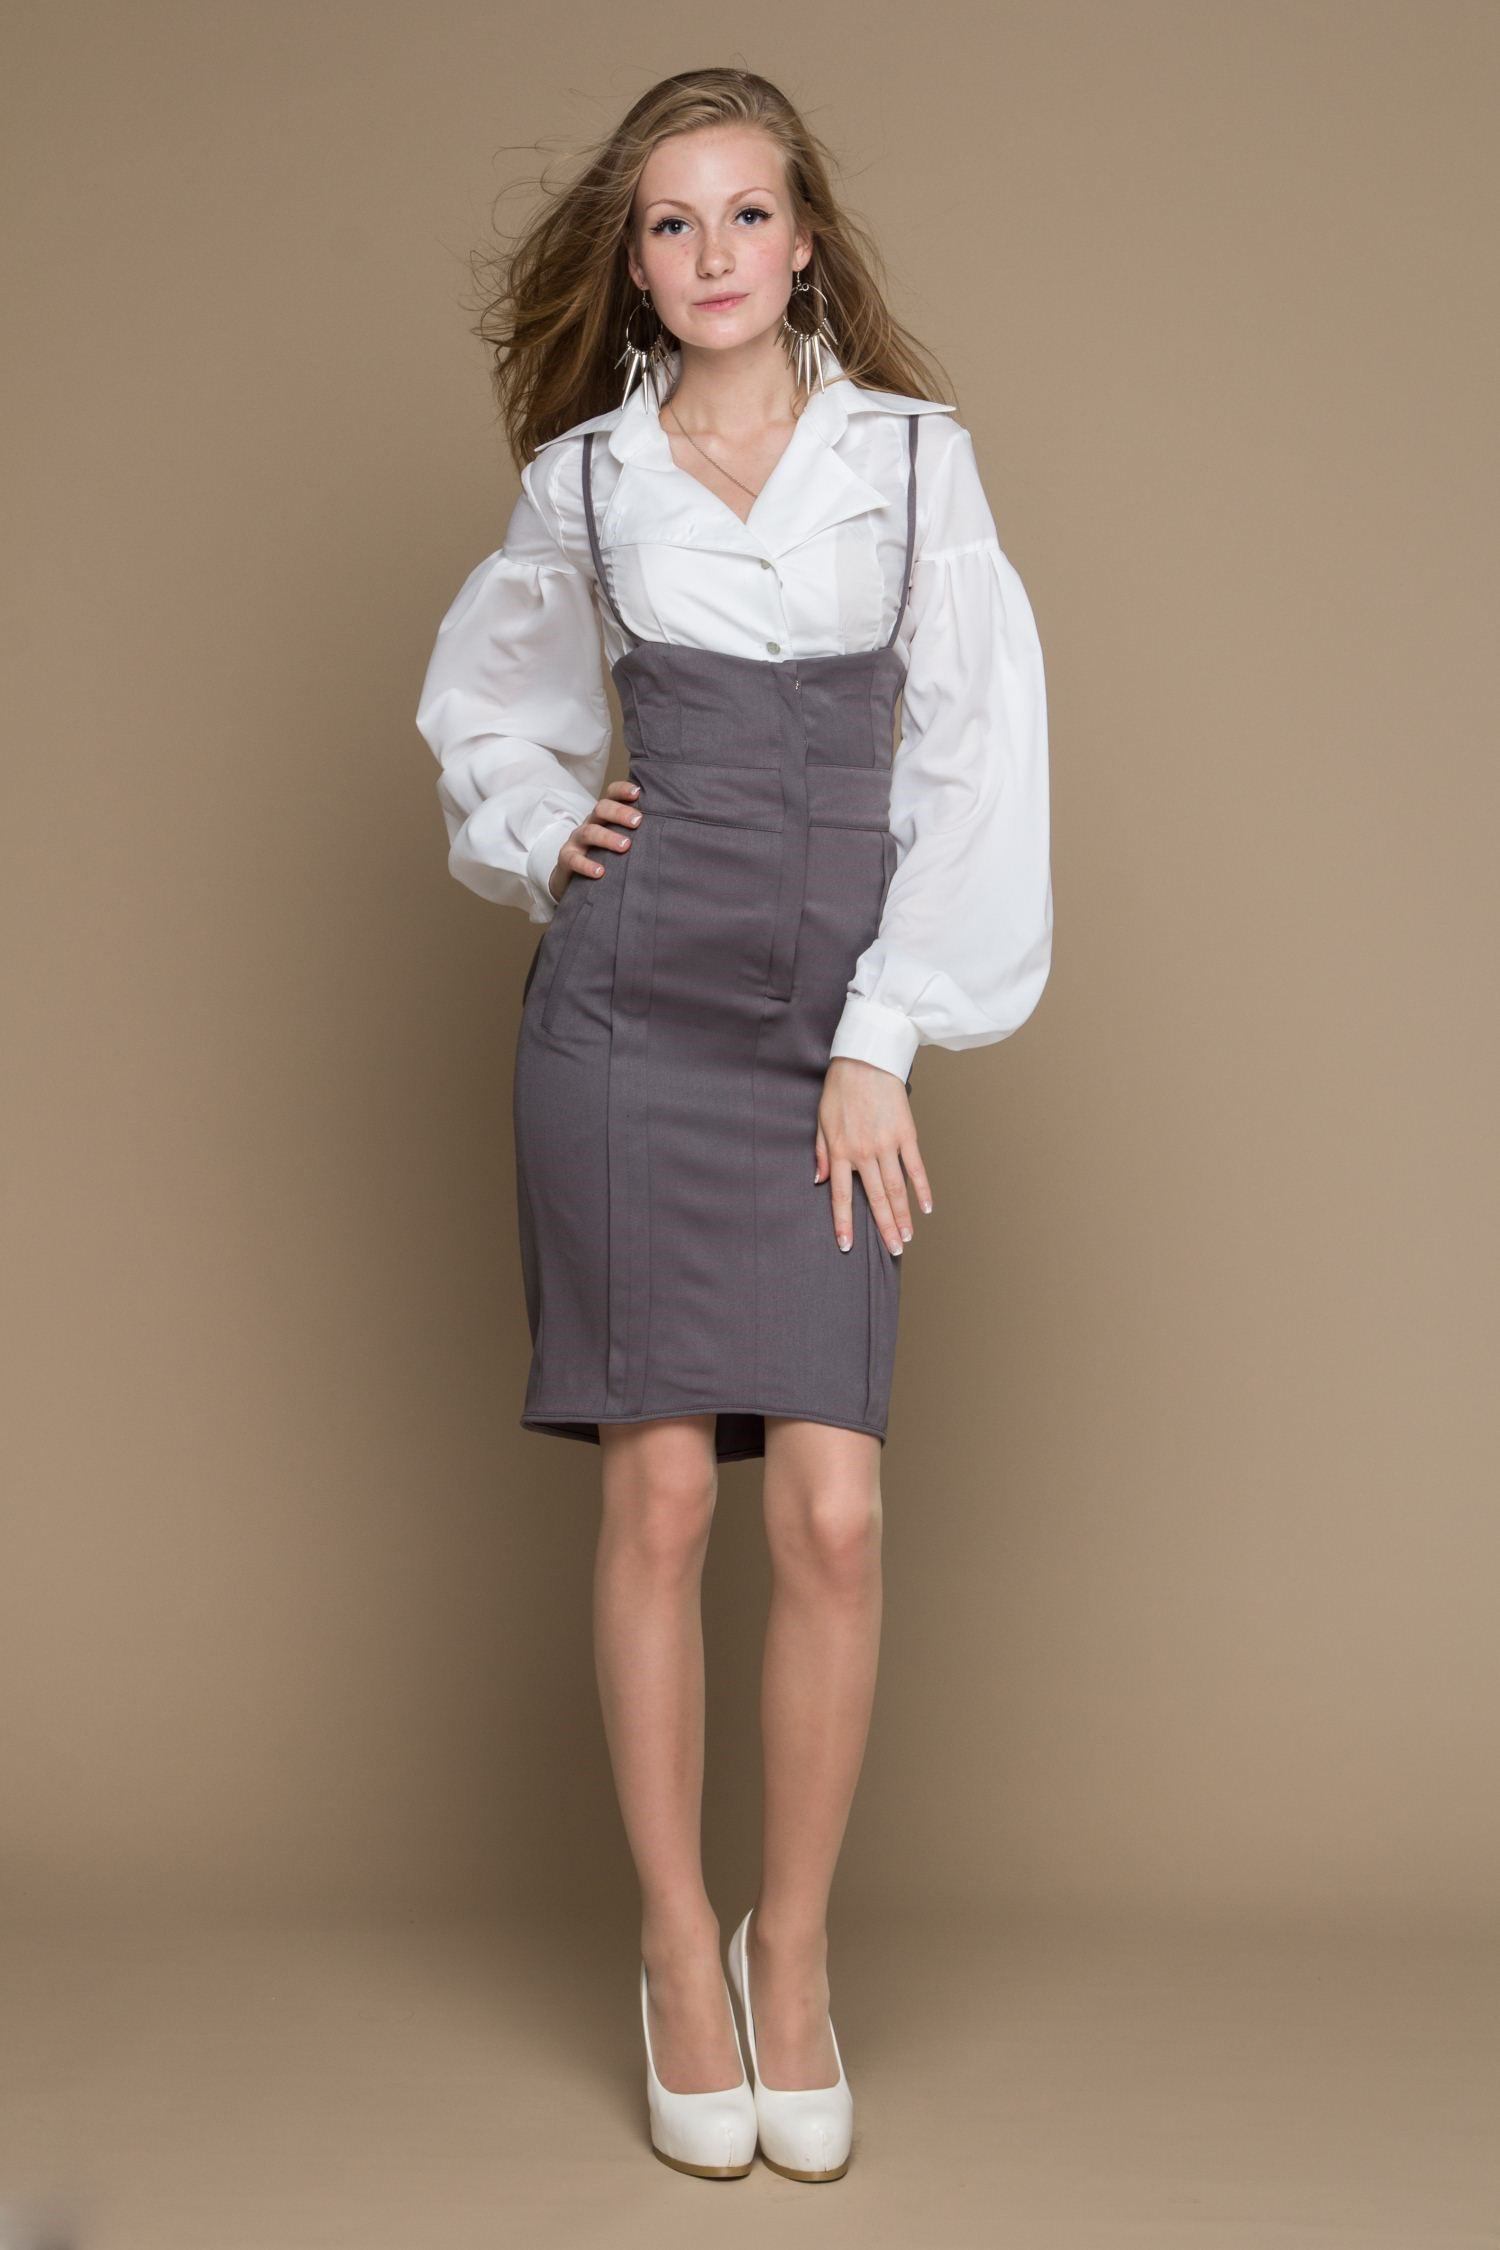 Smart skirt with high waist, lace and bow behind. print high waist skirt